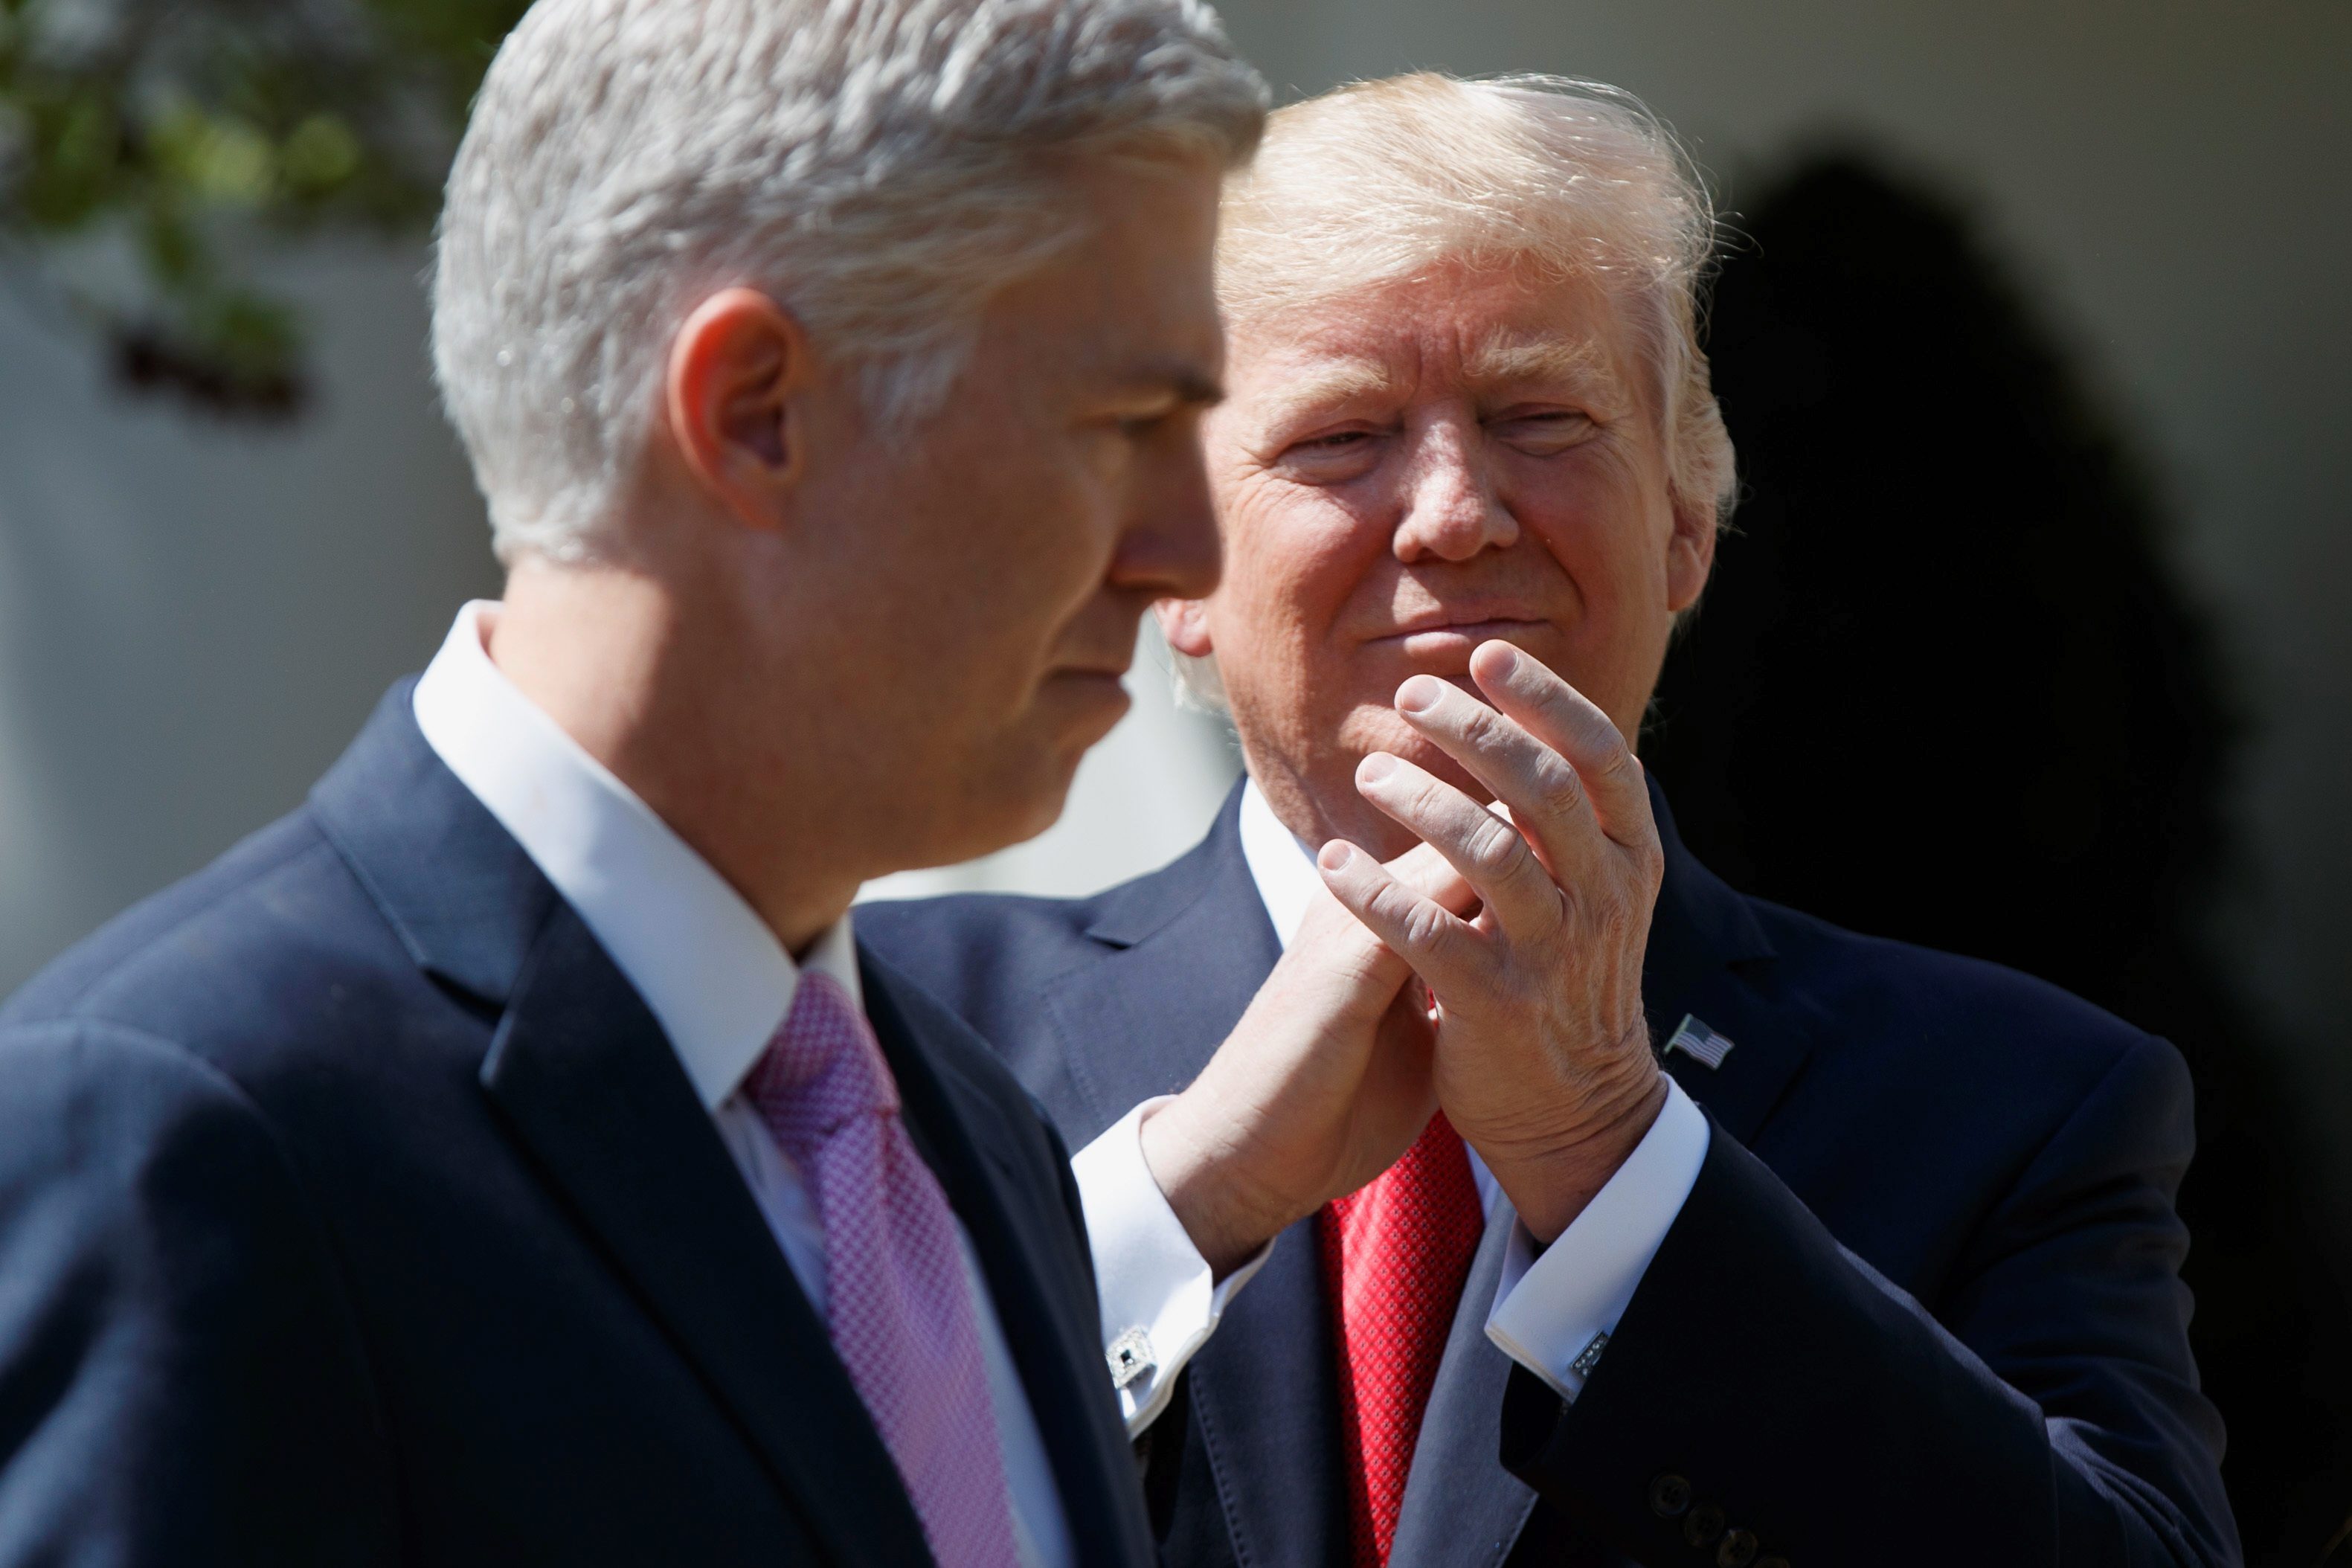 Trump vows to fill Supreme Court vacancy up to 'three days' before 2020 election